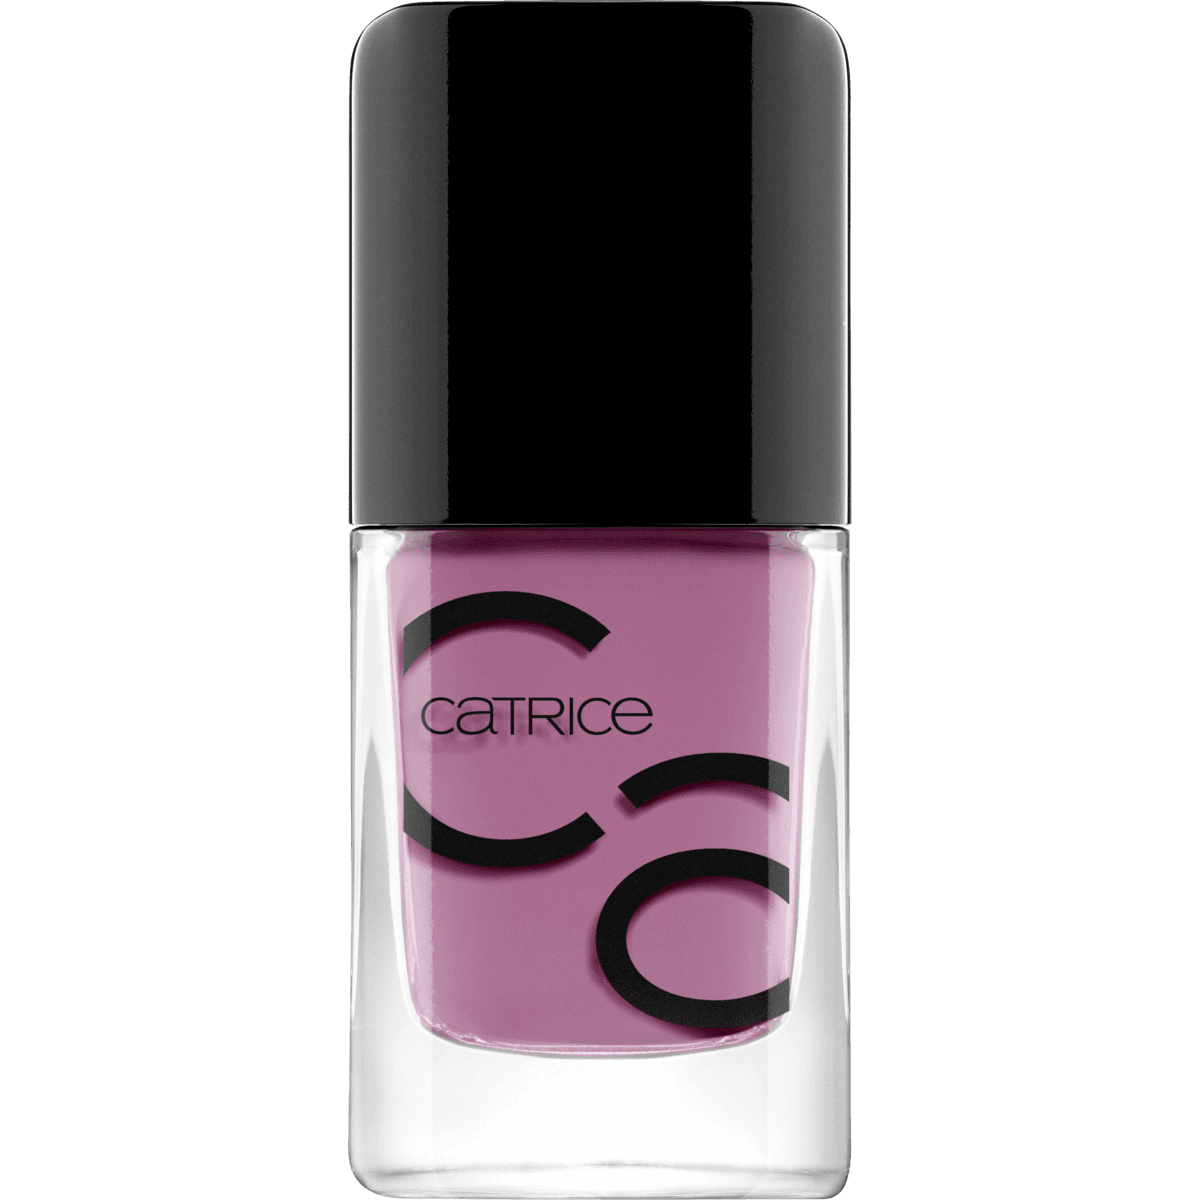 Catrice Iconails Gel Lacquer 73 I Have A Blush On You In 2020 Nail Polish Blush Nails